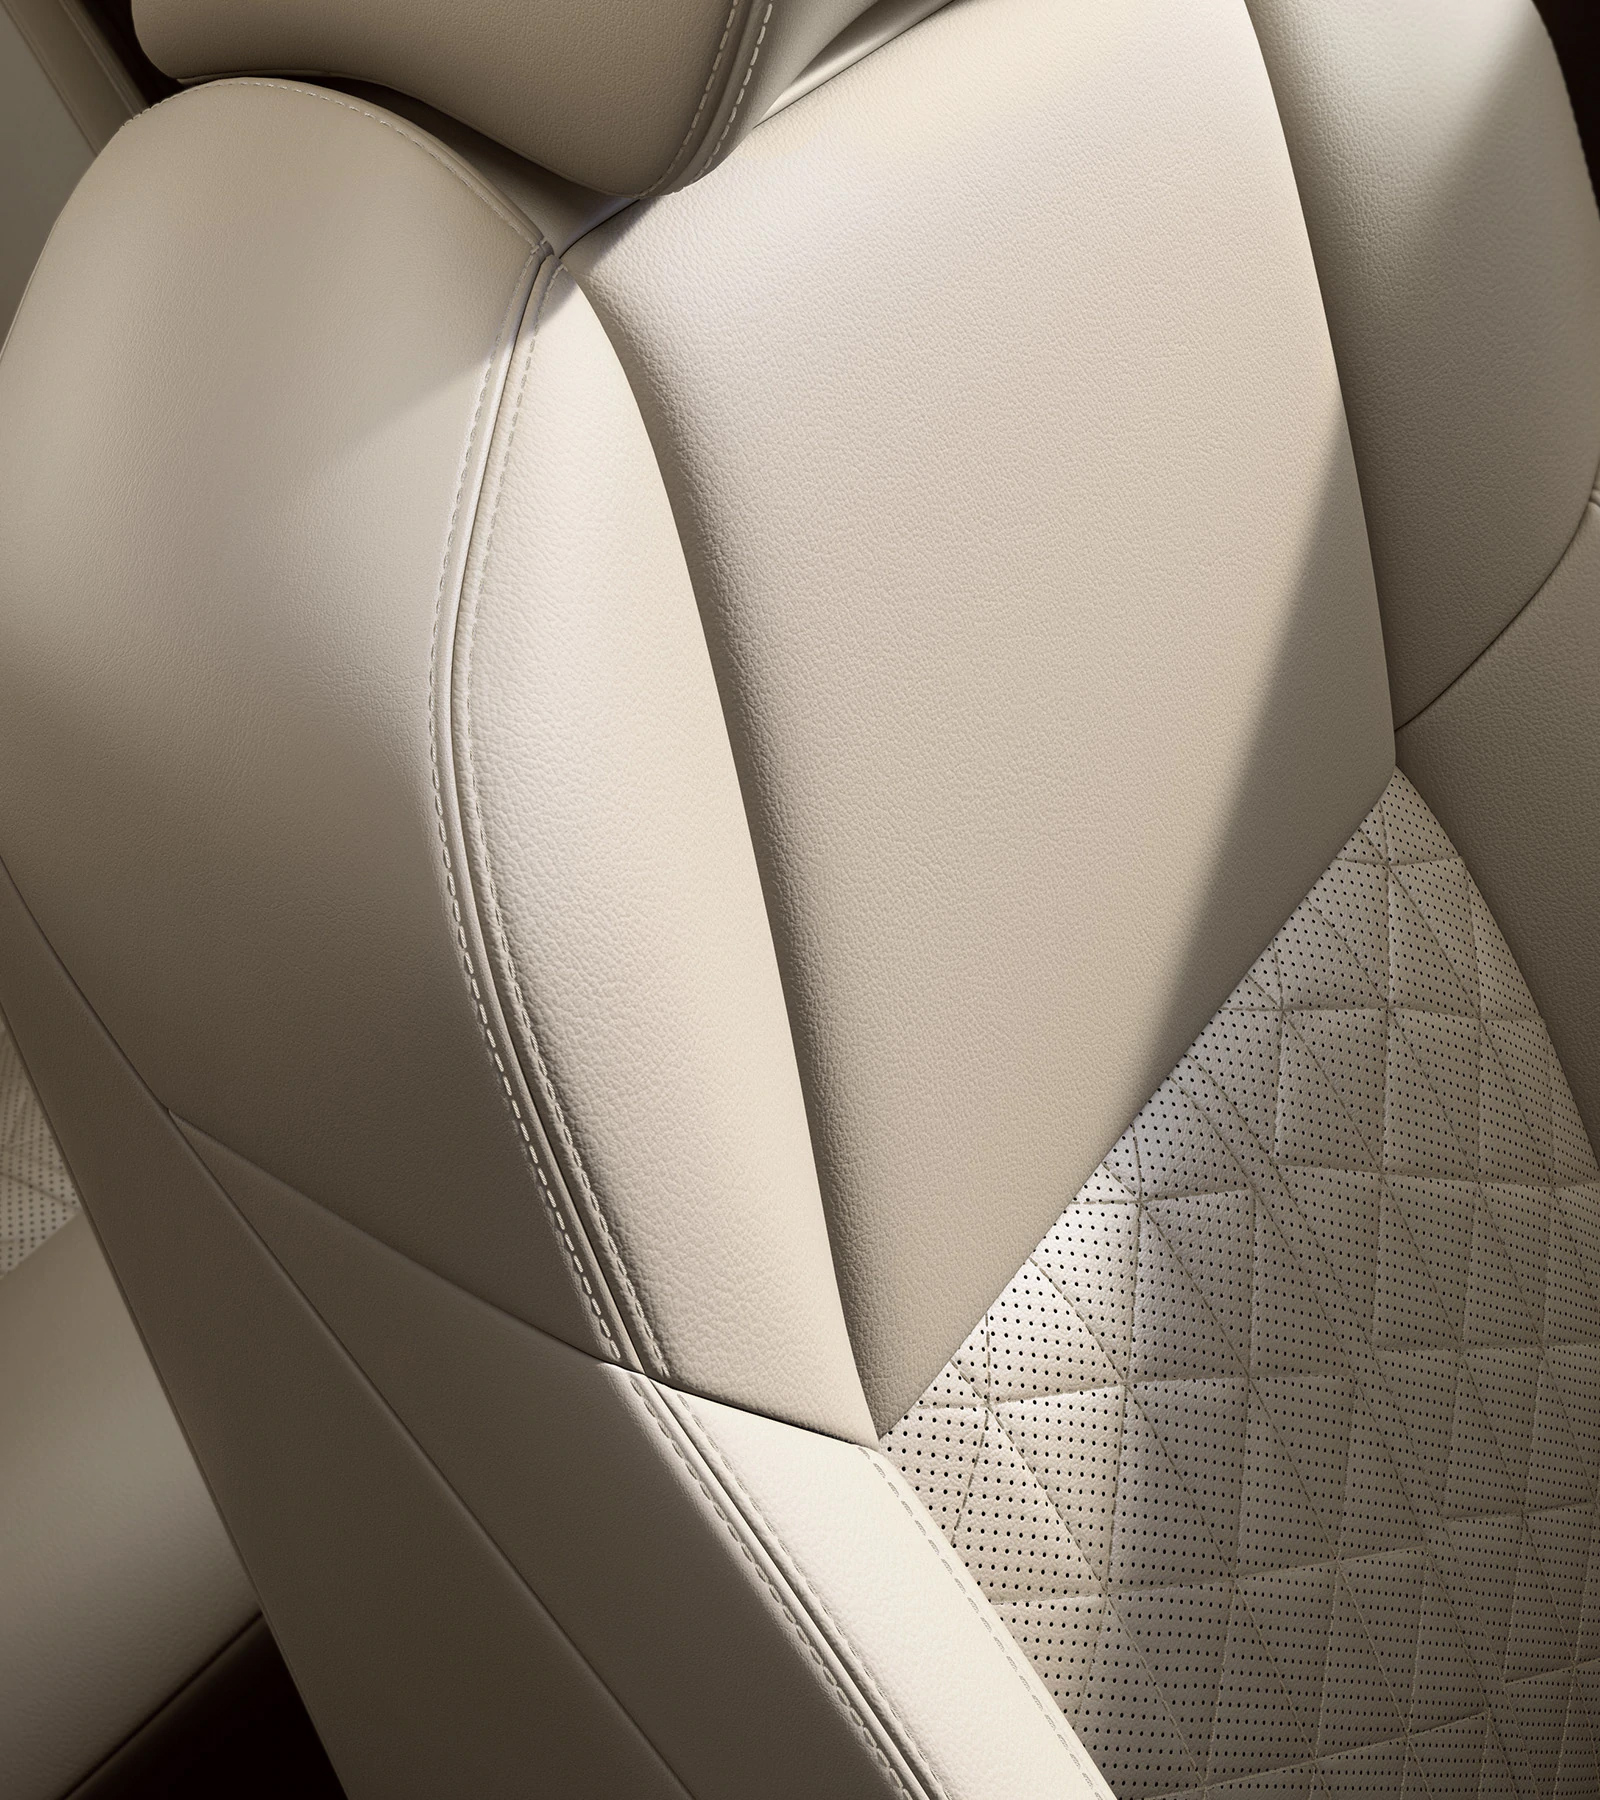 2019 Nissan Maxima with quilted leather-appointed seats